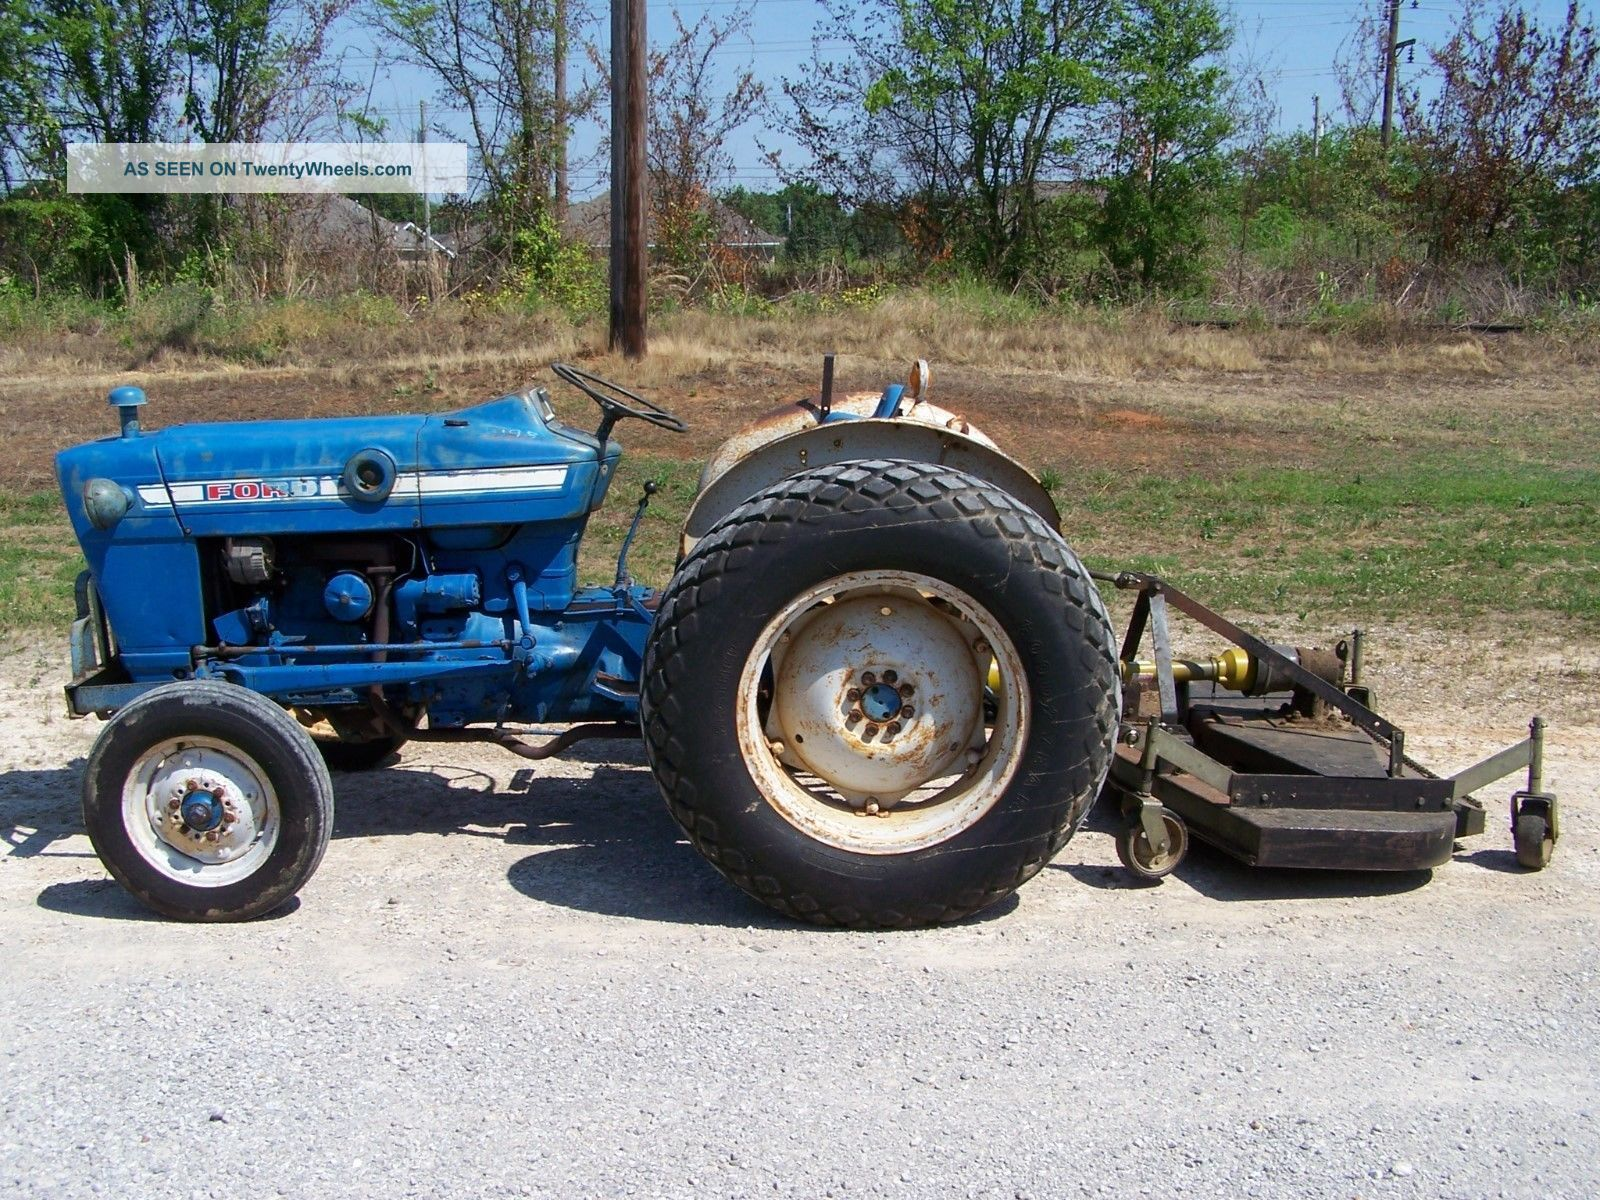 2000 Ford Tractor Information : Ford tractor with nortrac ft finish mower